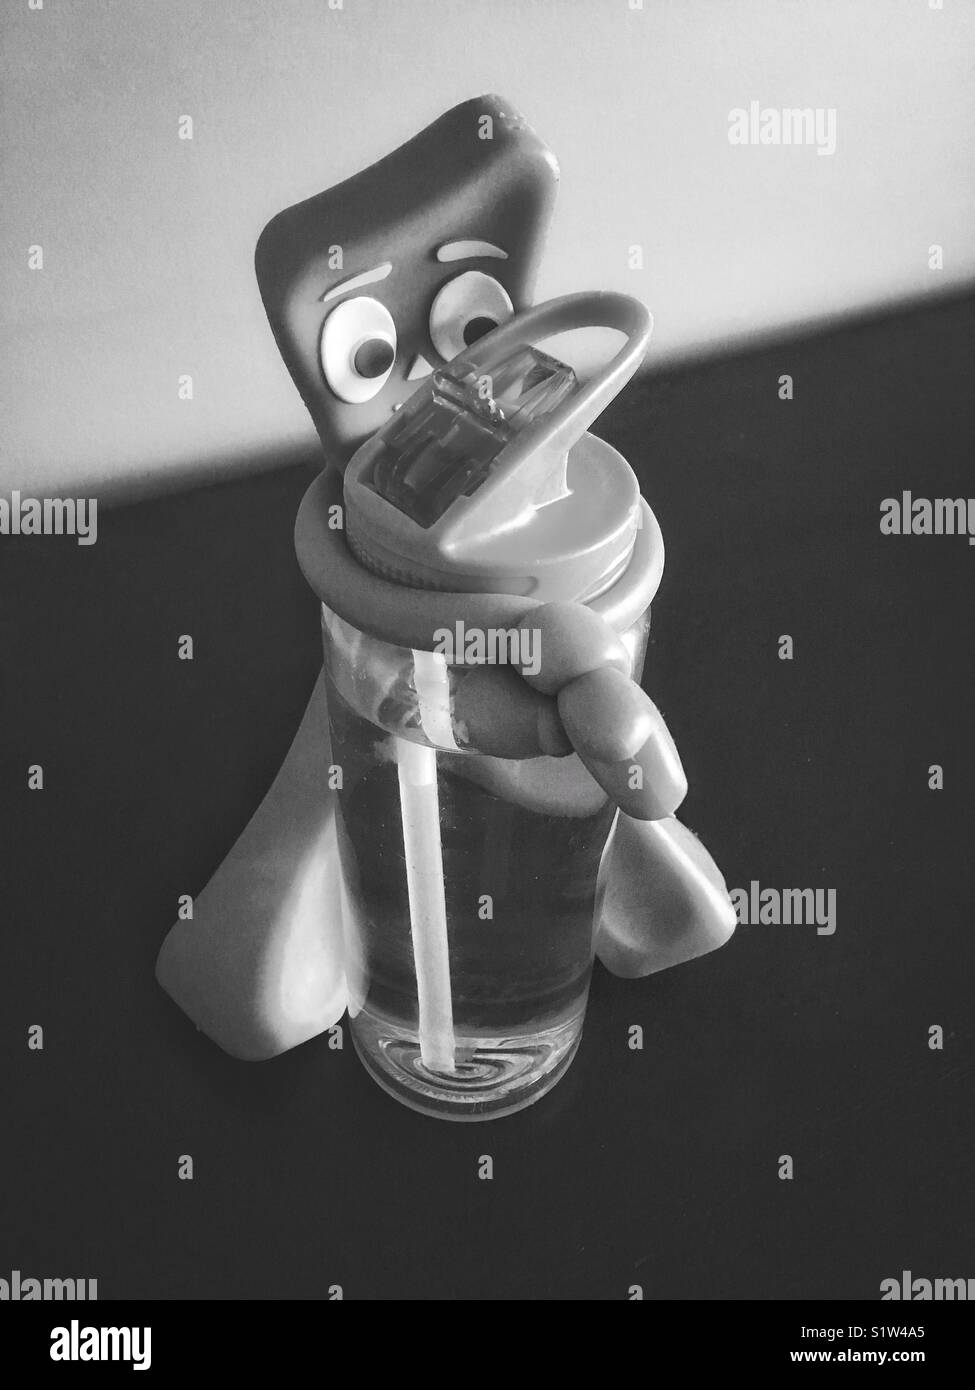 Gumby toy holding a plastic bottle with water, black and white thirst concept - Stock Image